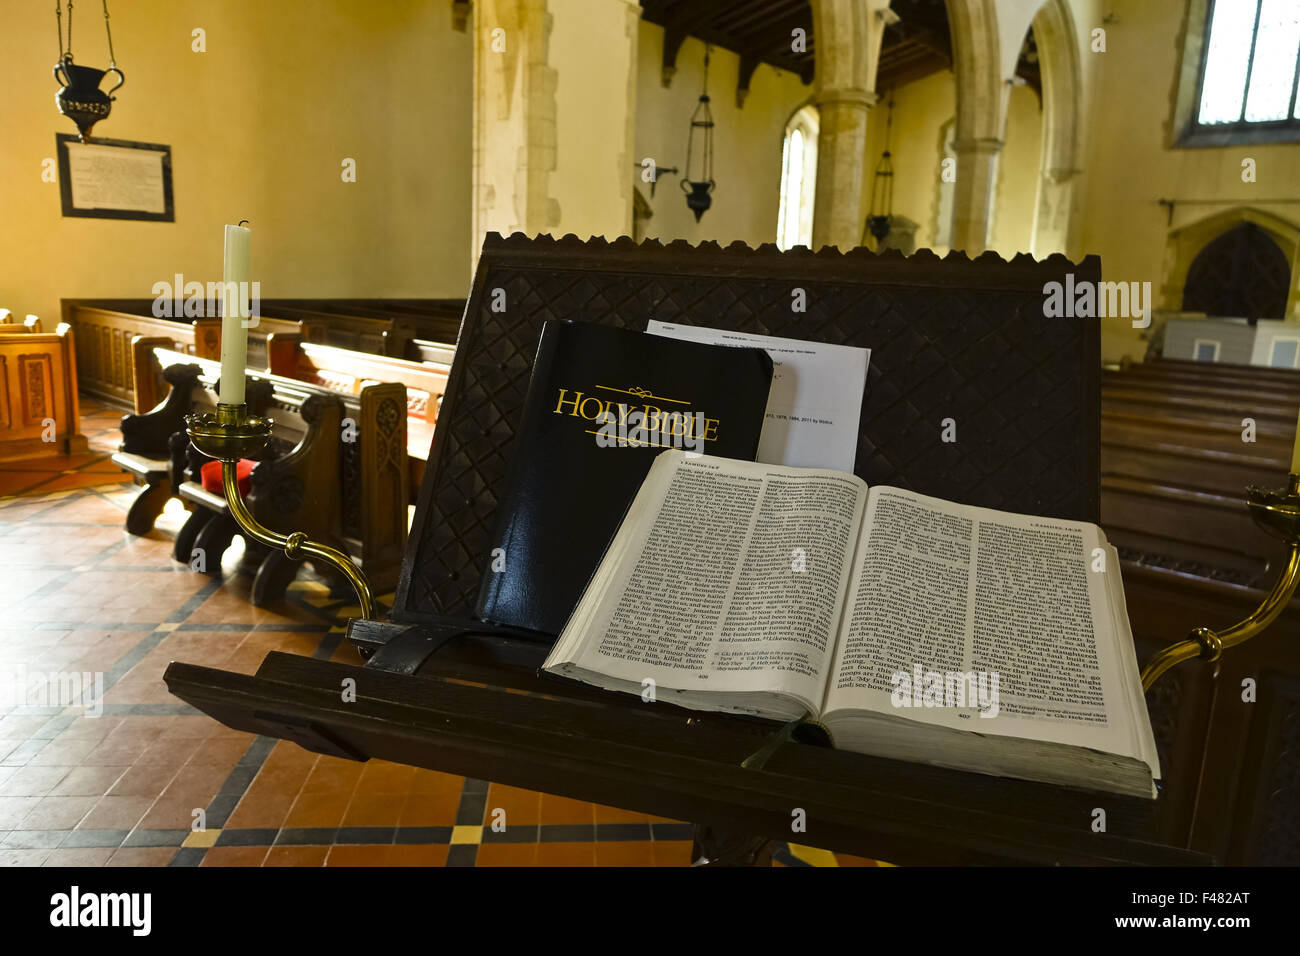 holy bible on church lectern - Stock Image